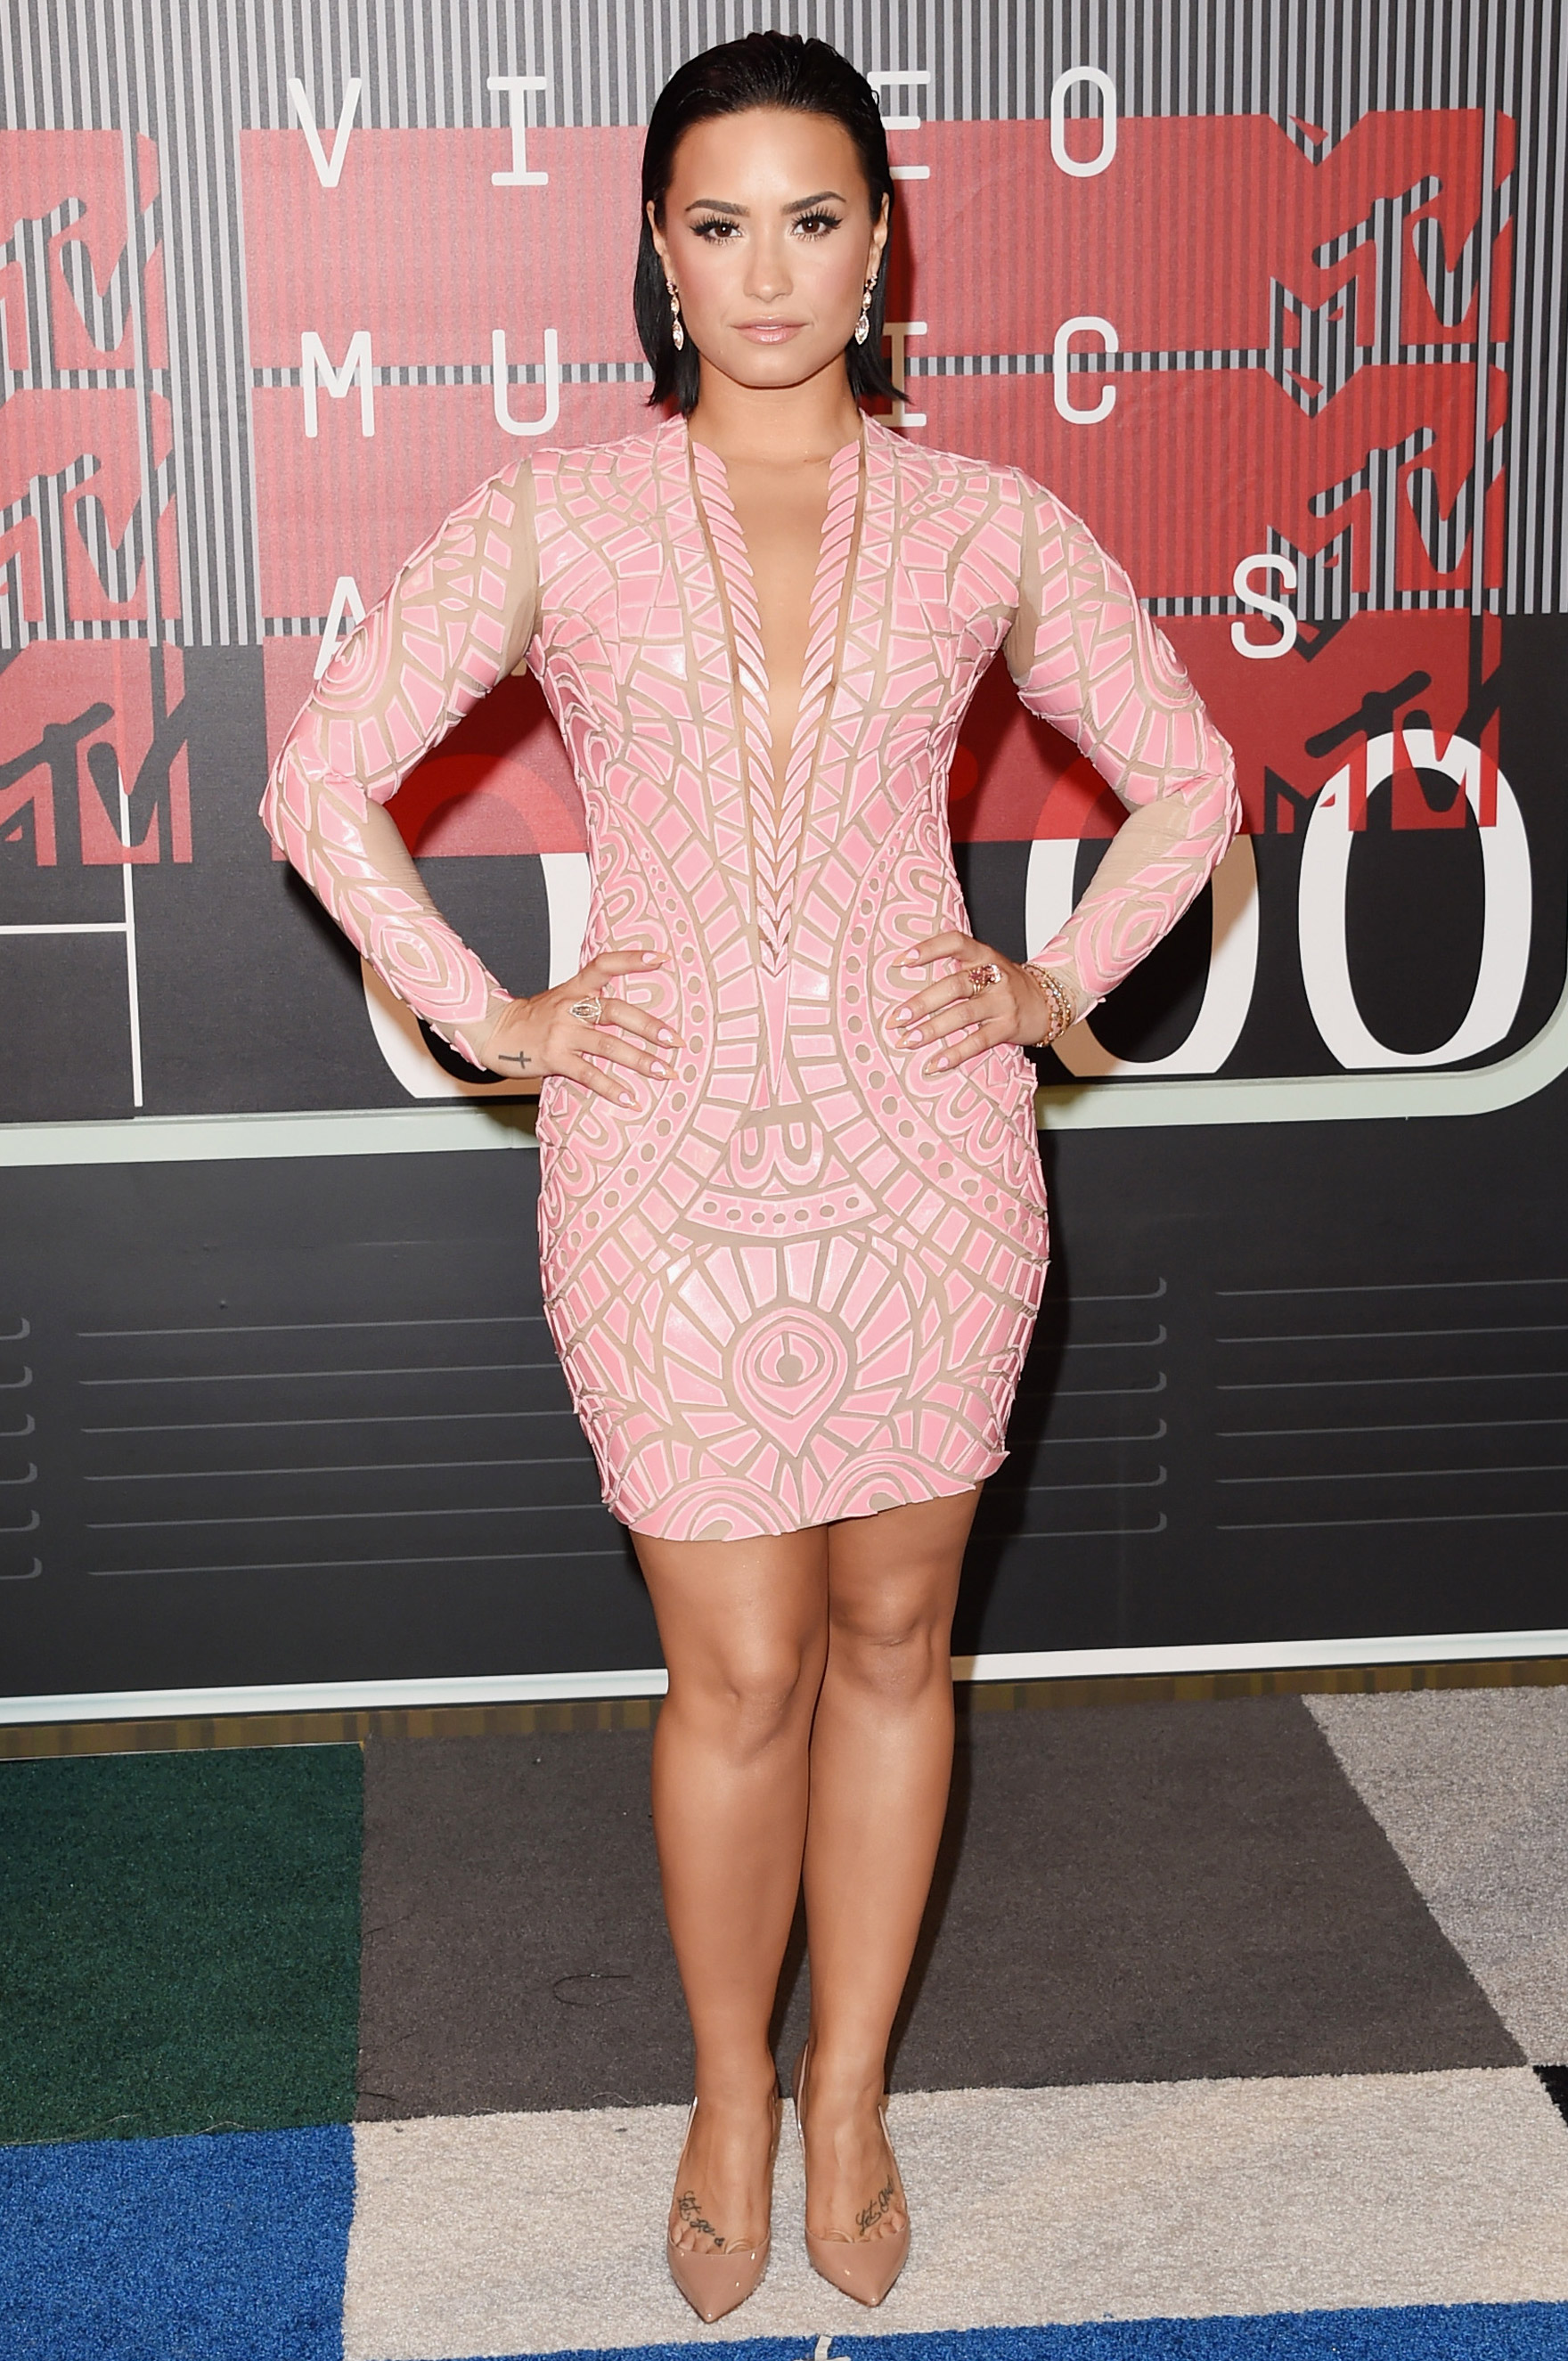 Demi Lovato arrives at the 2015 MTV Video Music Awards at Microsoft Theater on Aug. 30, 2015 in Los Angeles.